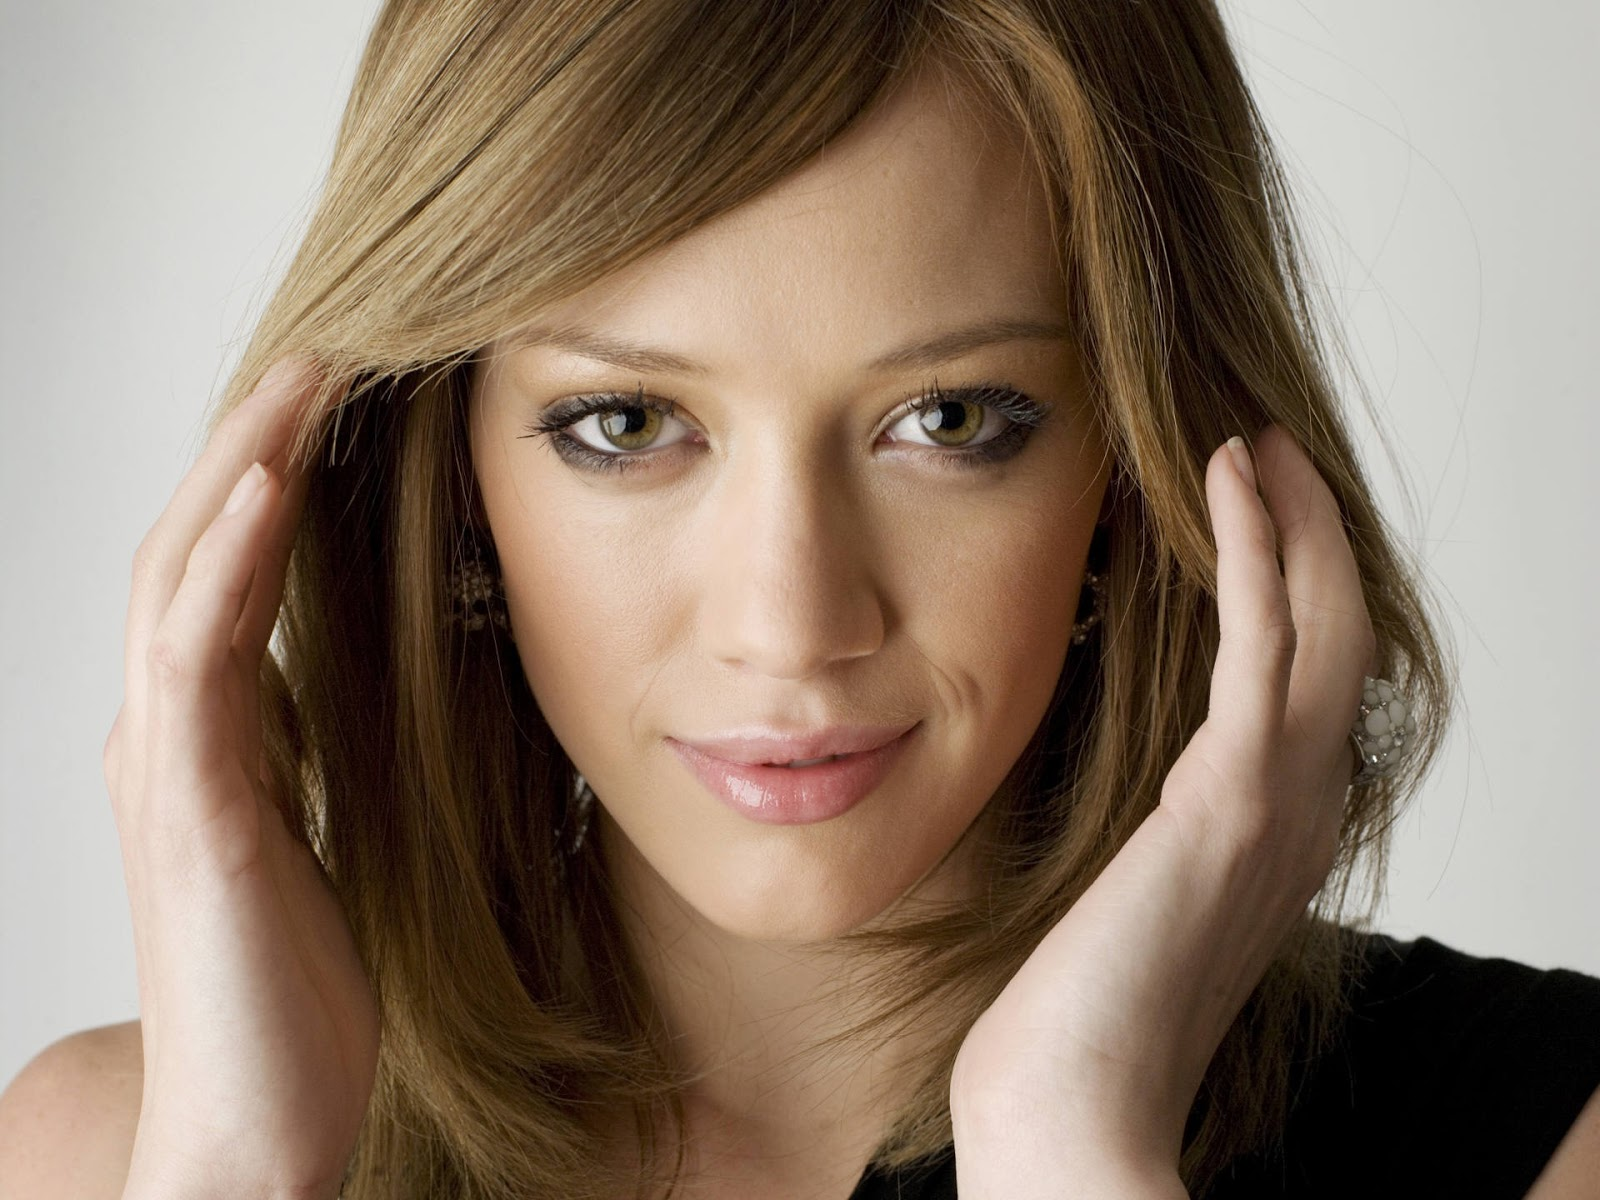 Hilary duff hilary duff hd wallpapers - Celebrity background ...